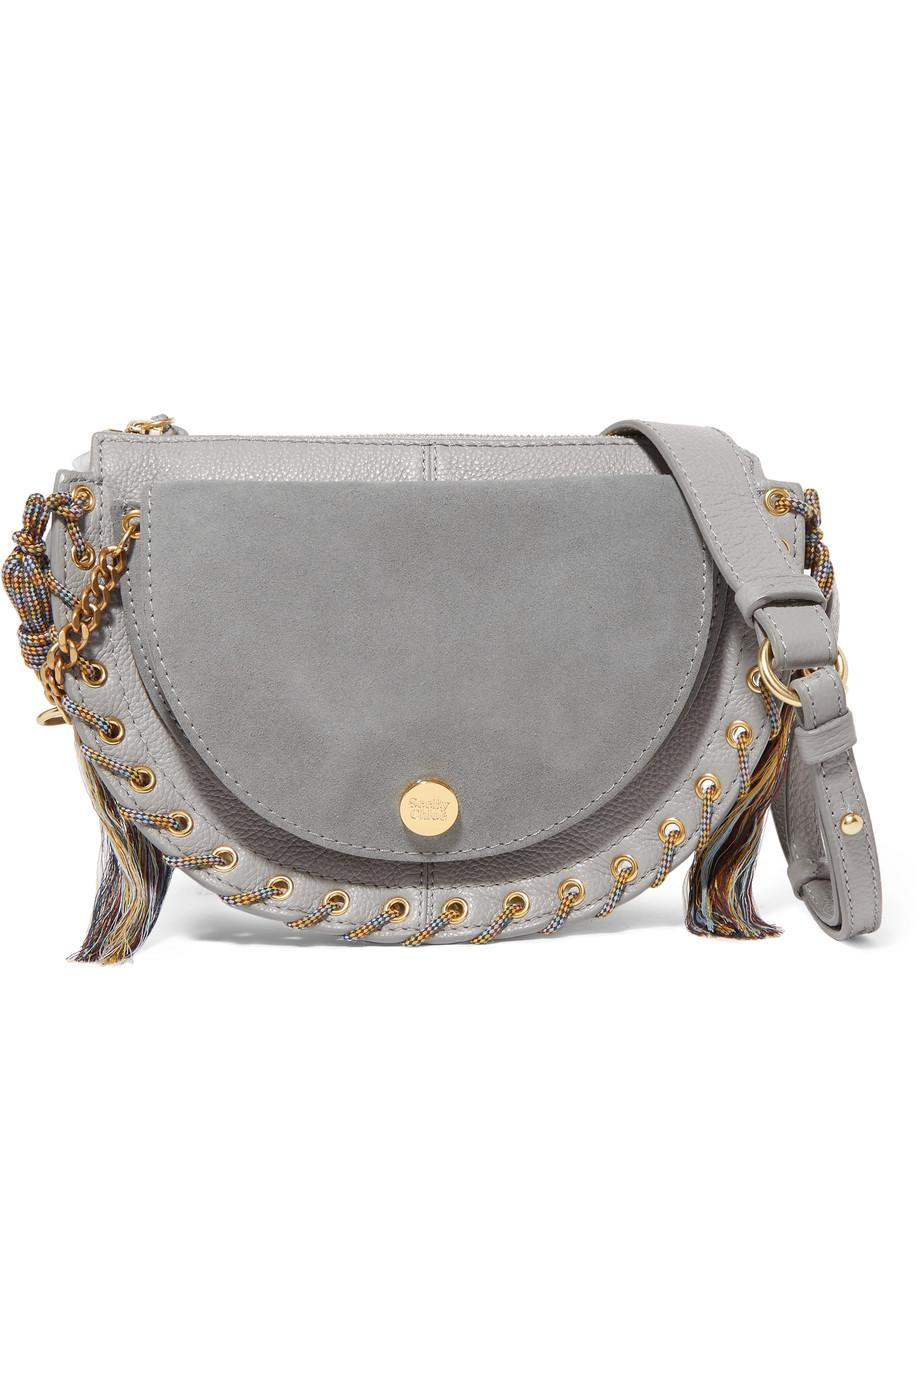 Kriss Mini Eyelet-embellished Textured-leather And Suede Shoulder Bag - Black See By Chloé Cheap Sale Marketable Sale Fashionable Buy Cheap For Cheap Perfect Sale Online Cheap Sale Best Sale NrUoqKDPTN